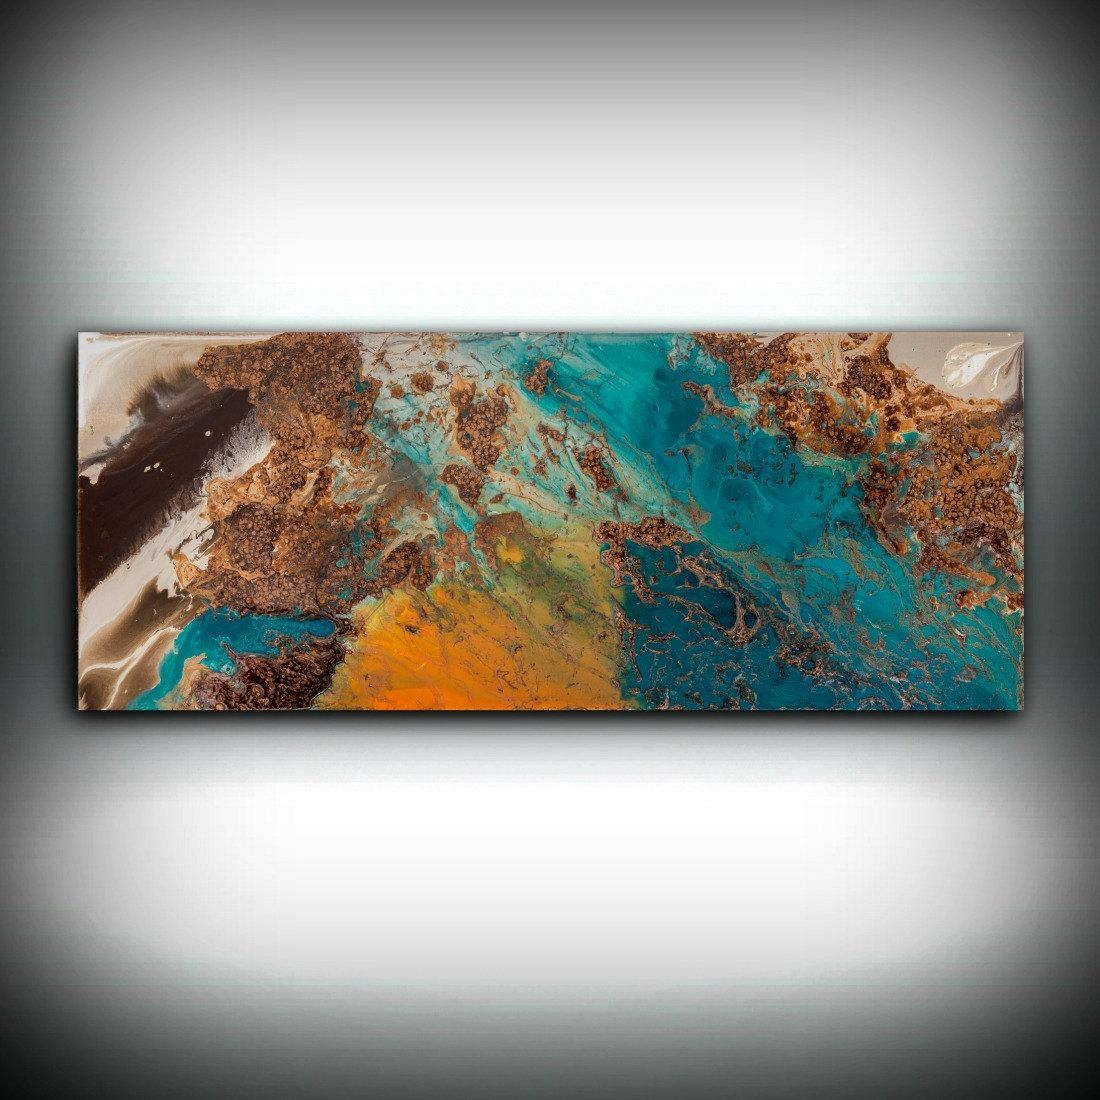 Sale Blue And Copper Art, Wall Art Prints Fine Art Prints Abstract With Regard To Blue And Brown Wall Art (View 8 of 20)